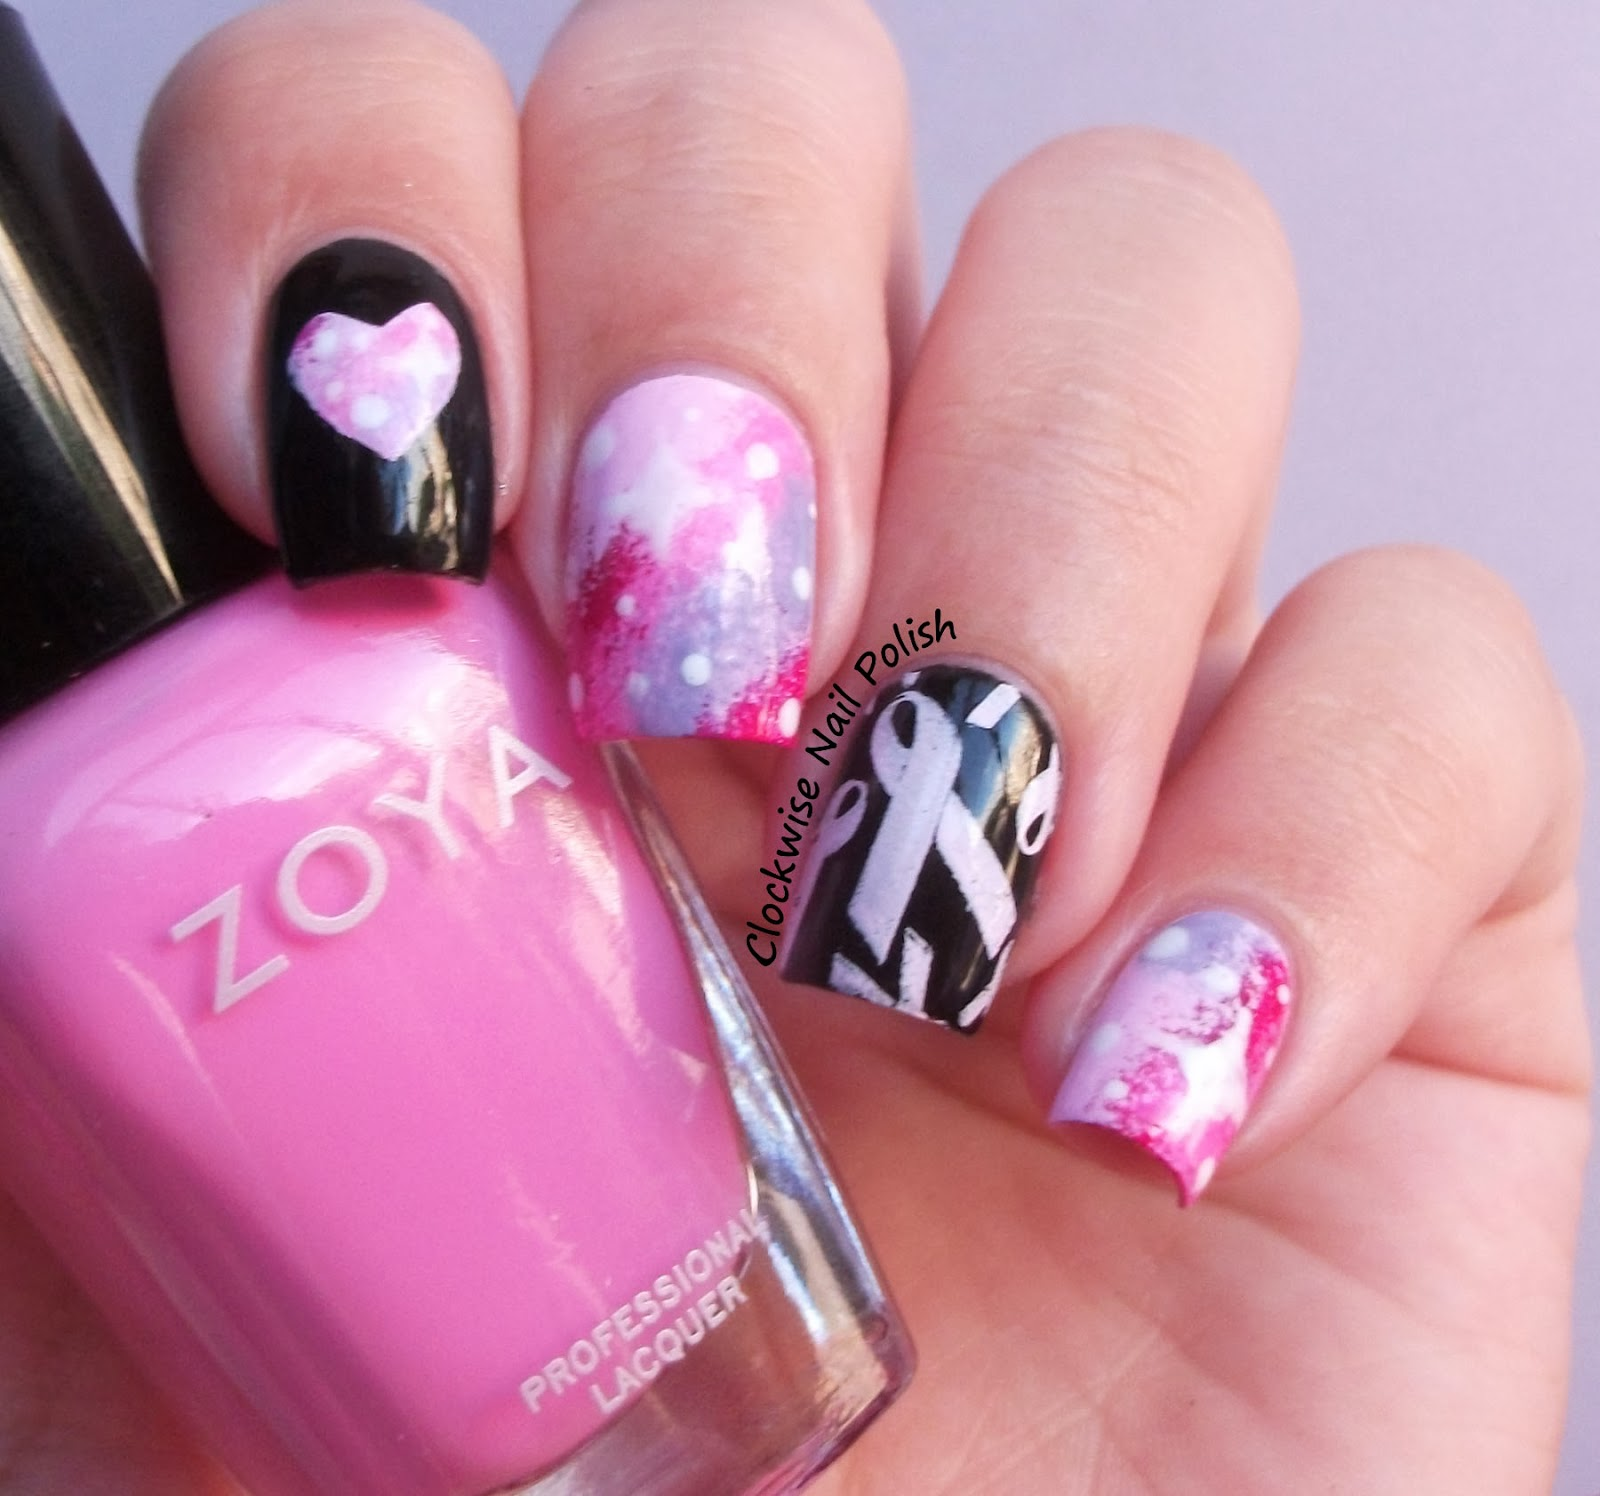 The Clockwise Nail Polish: Pink Nails for Breast Cancer ...